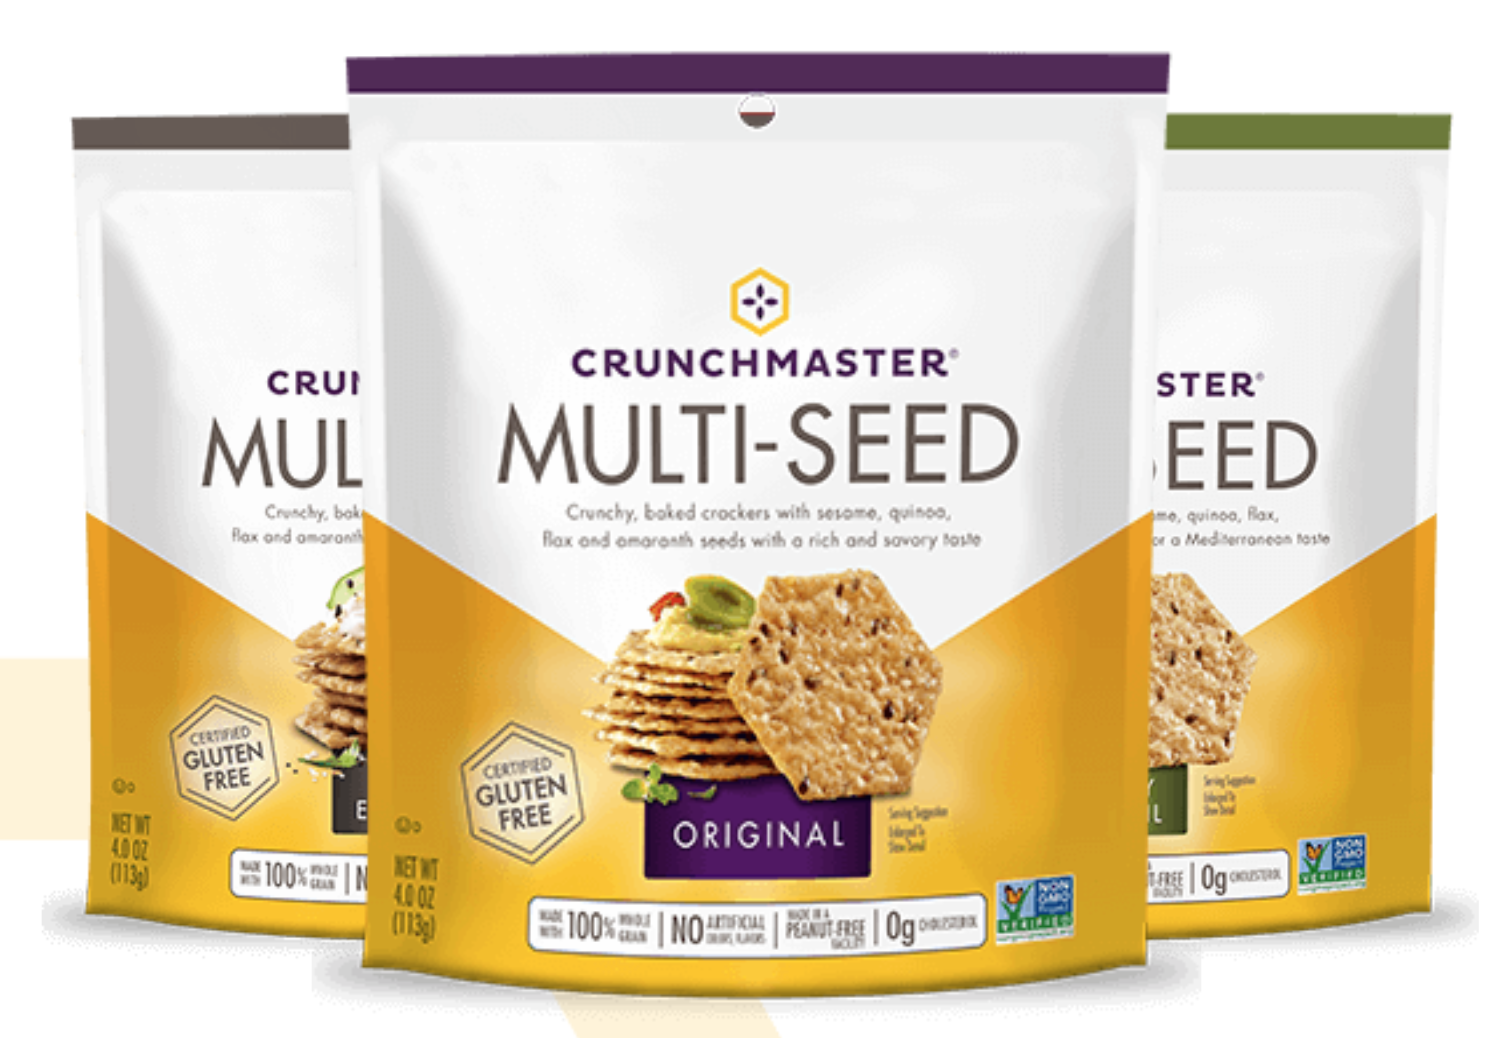 Crunchmaster Crackers FREE at Publix  – NO Gluten or Peanut